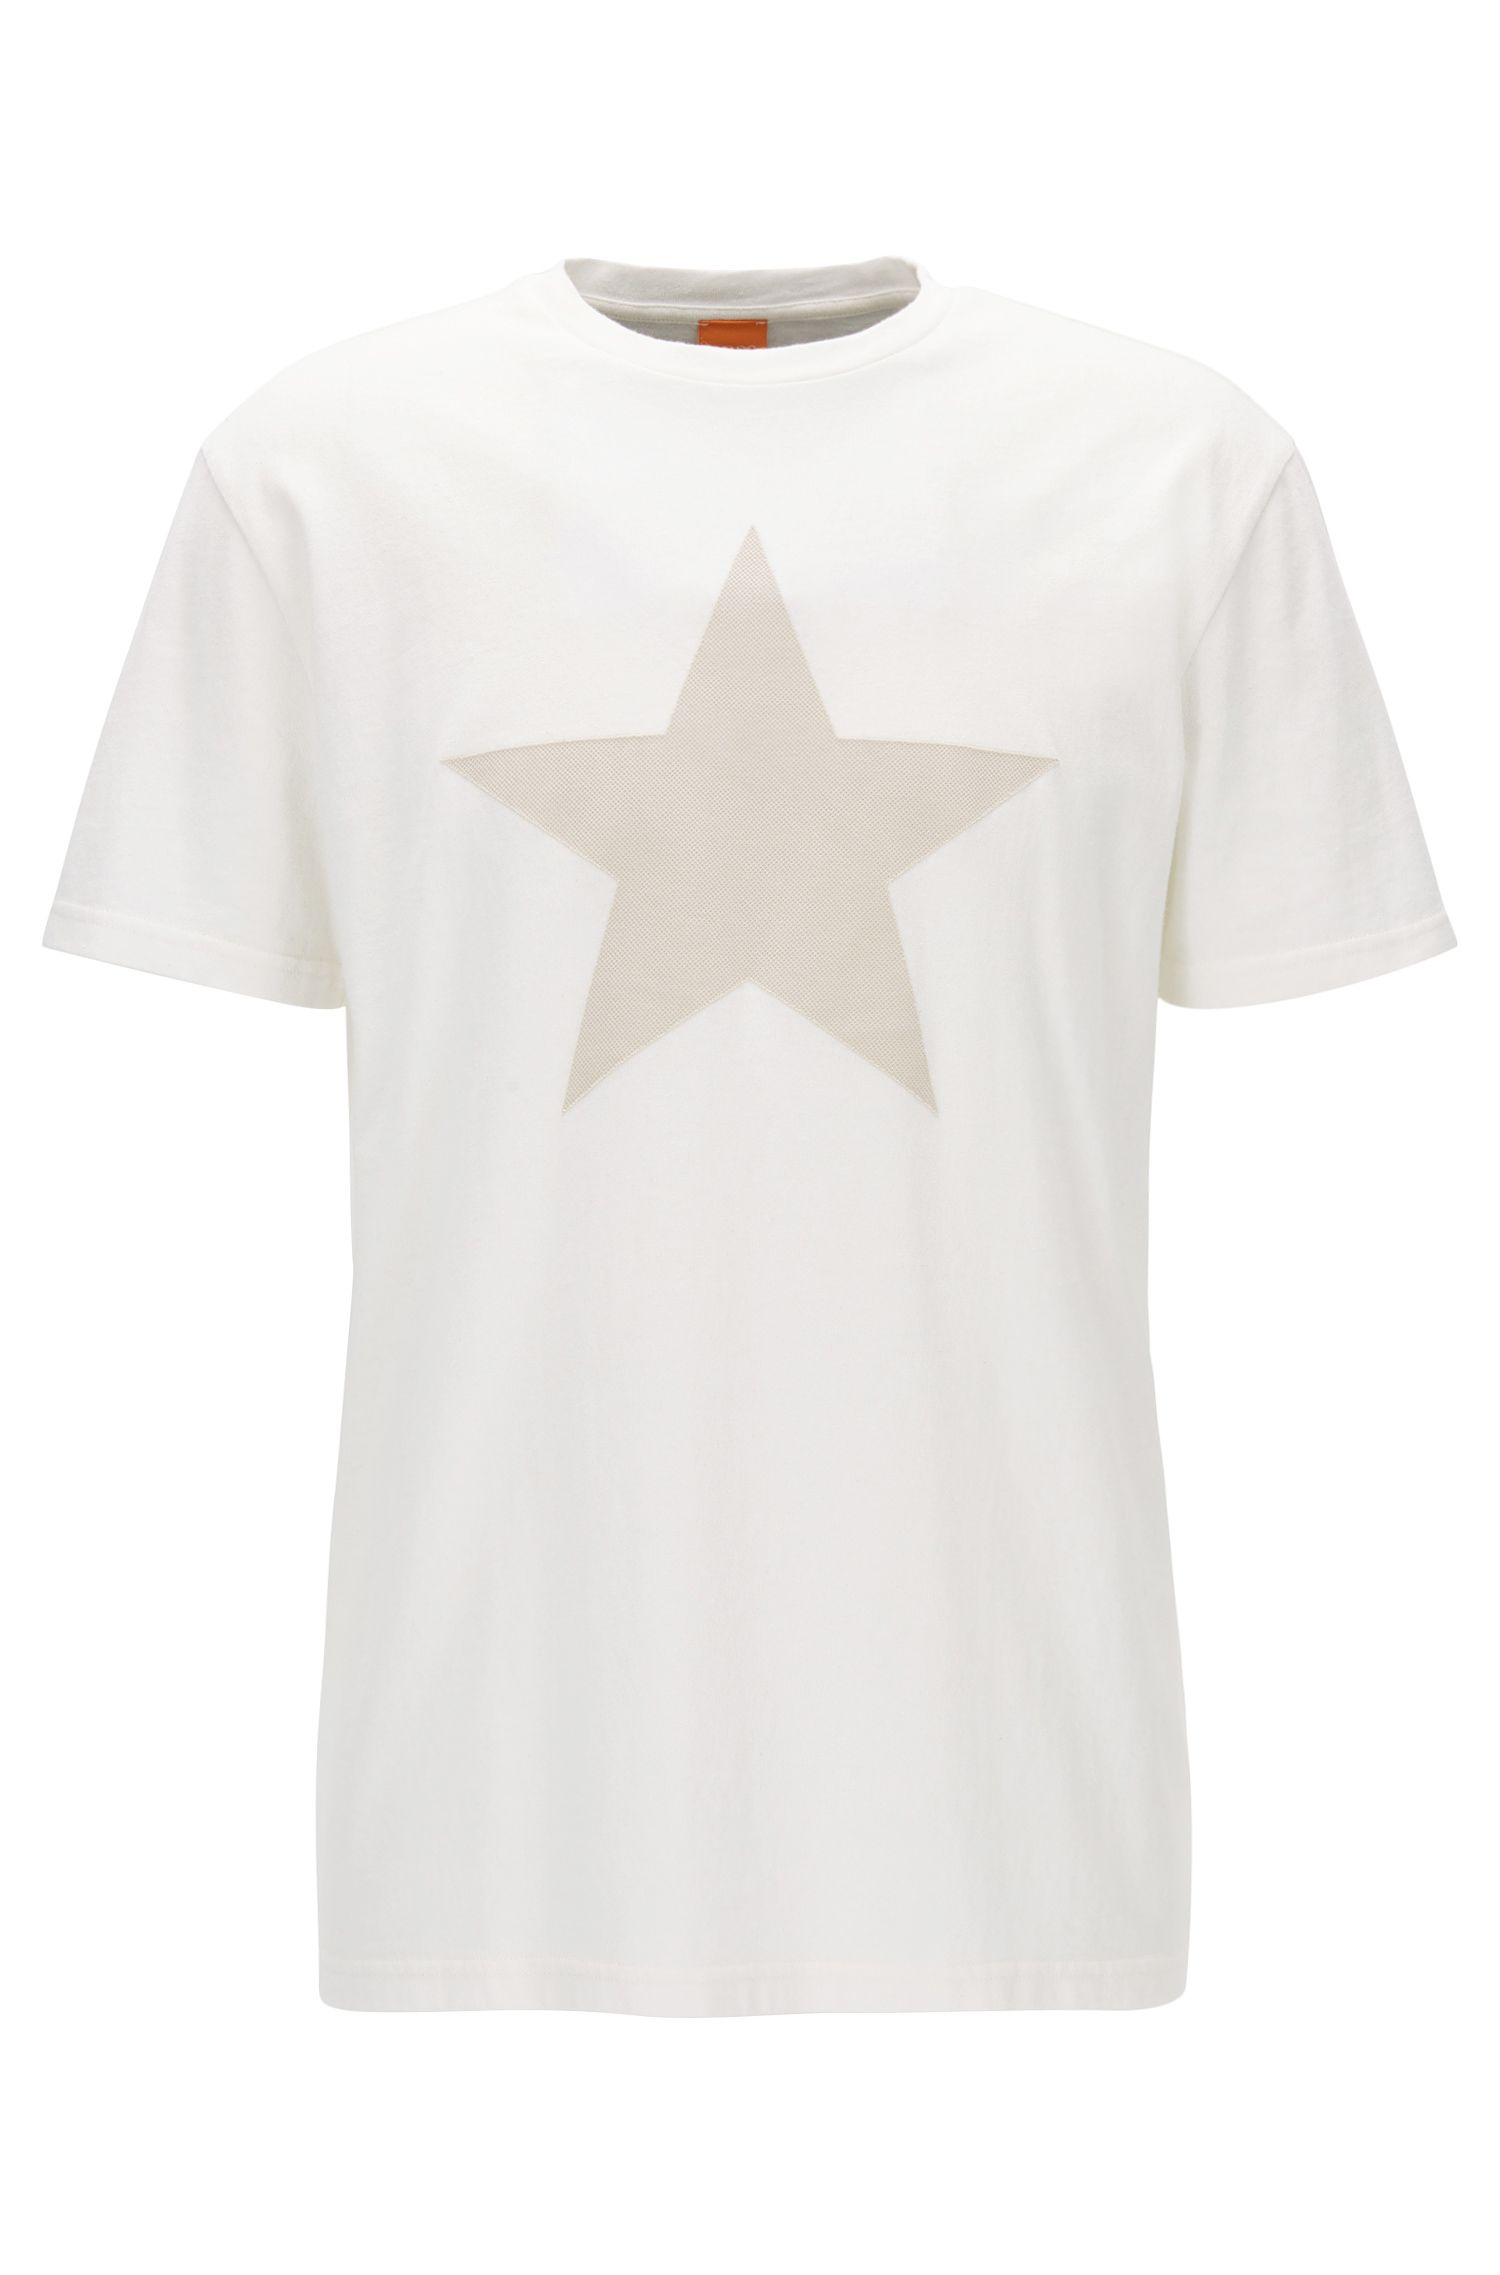 Relaxed-fit cotton T-shirt with applied star